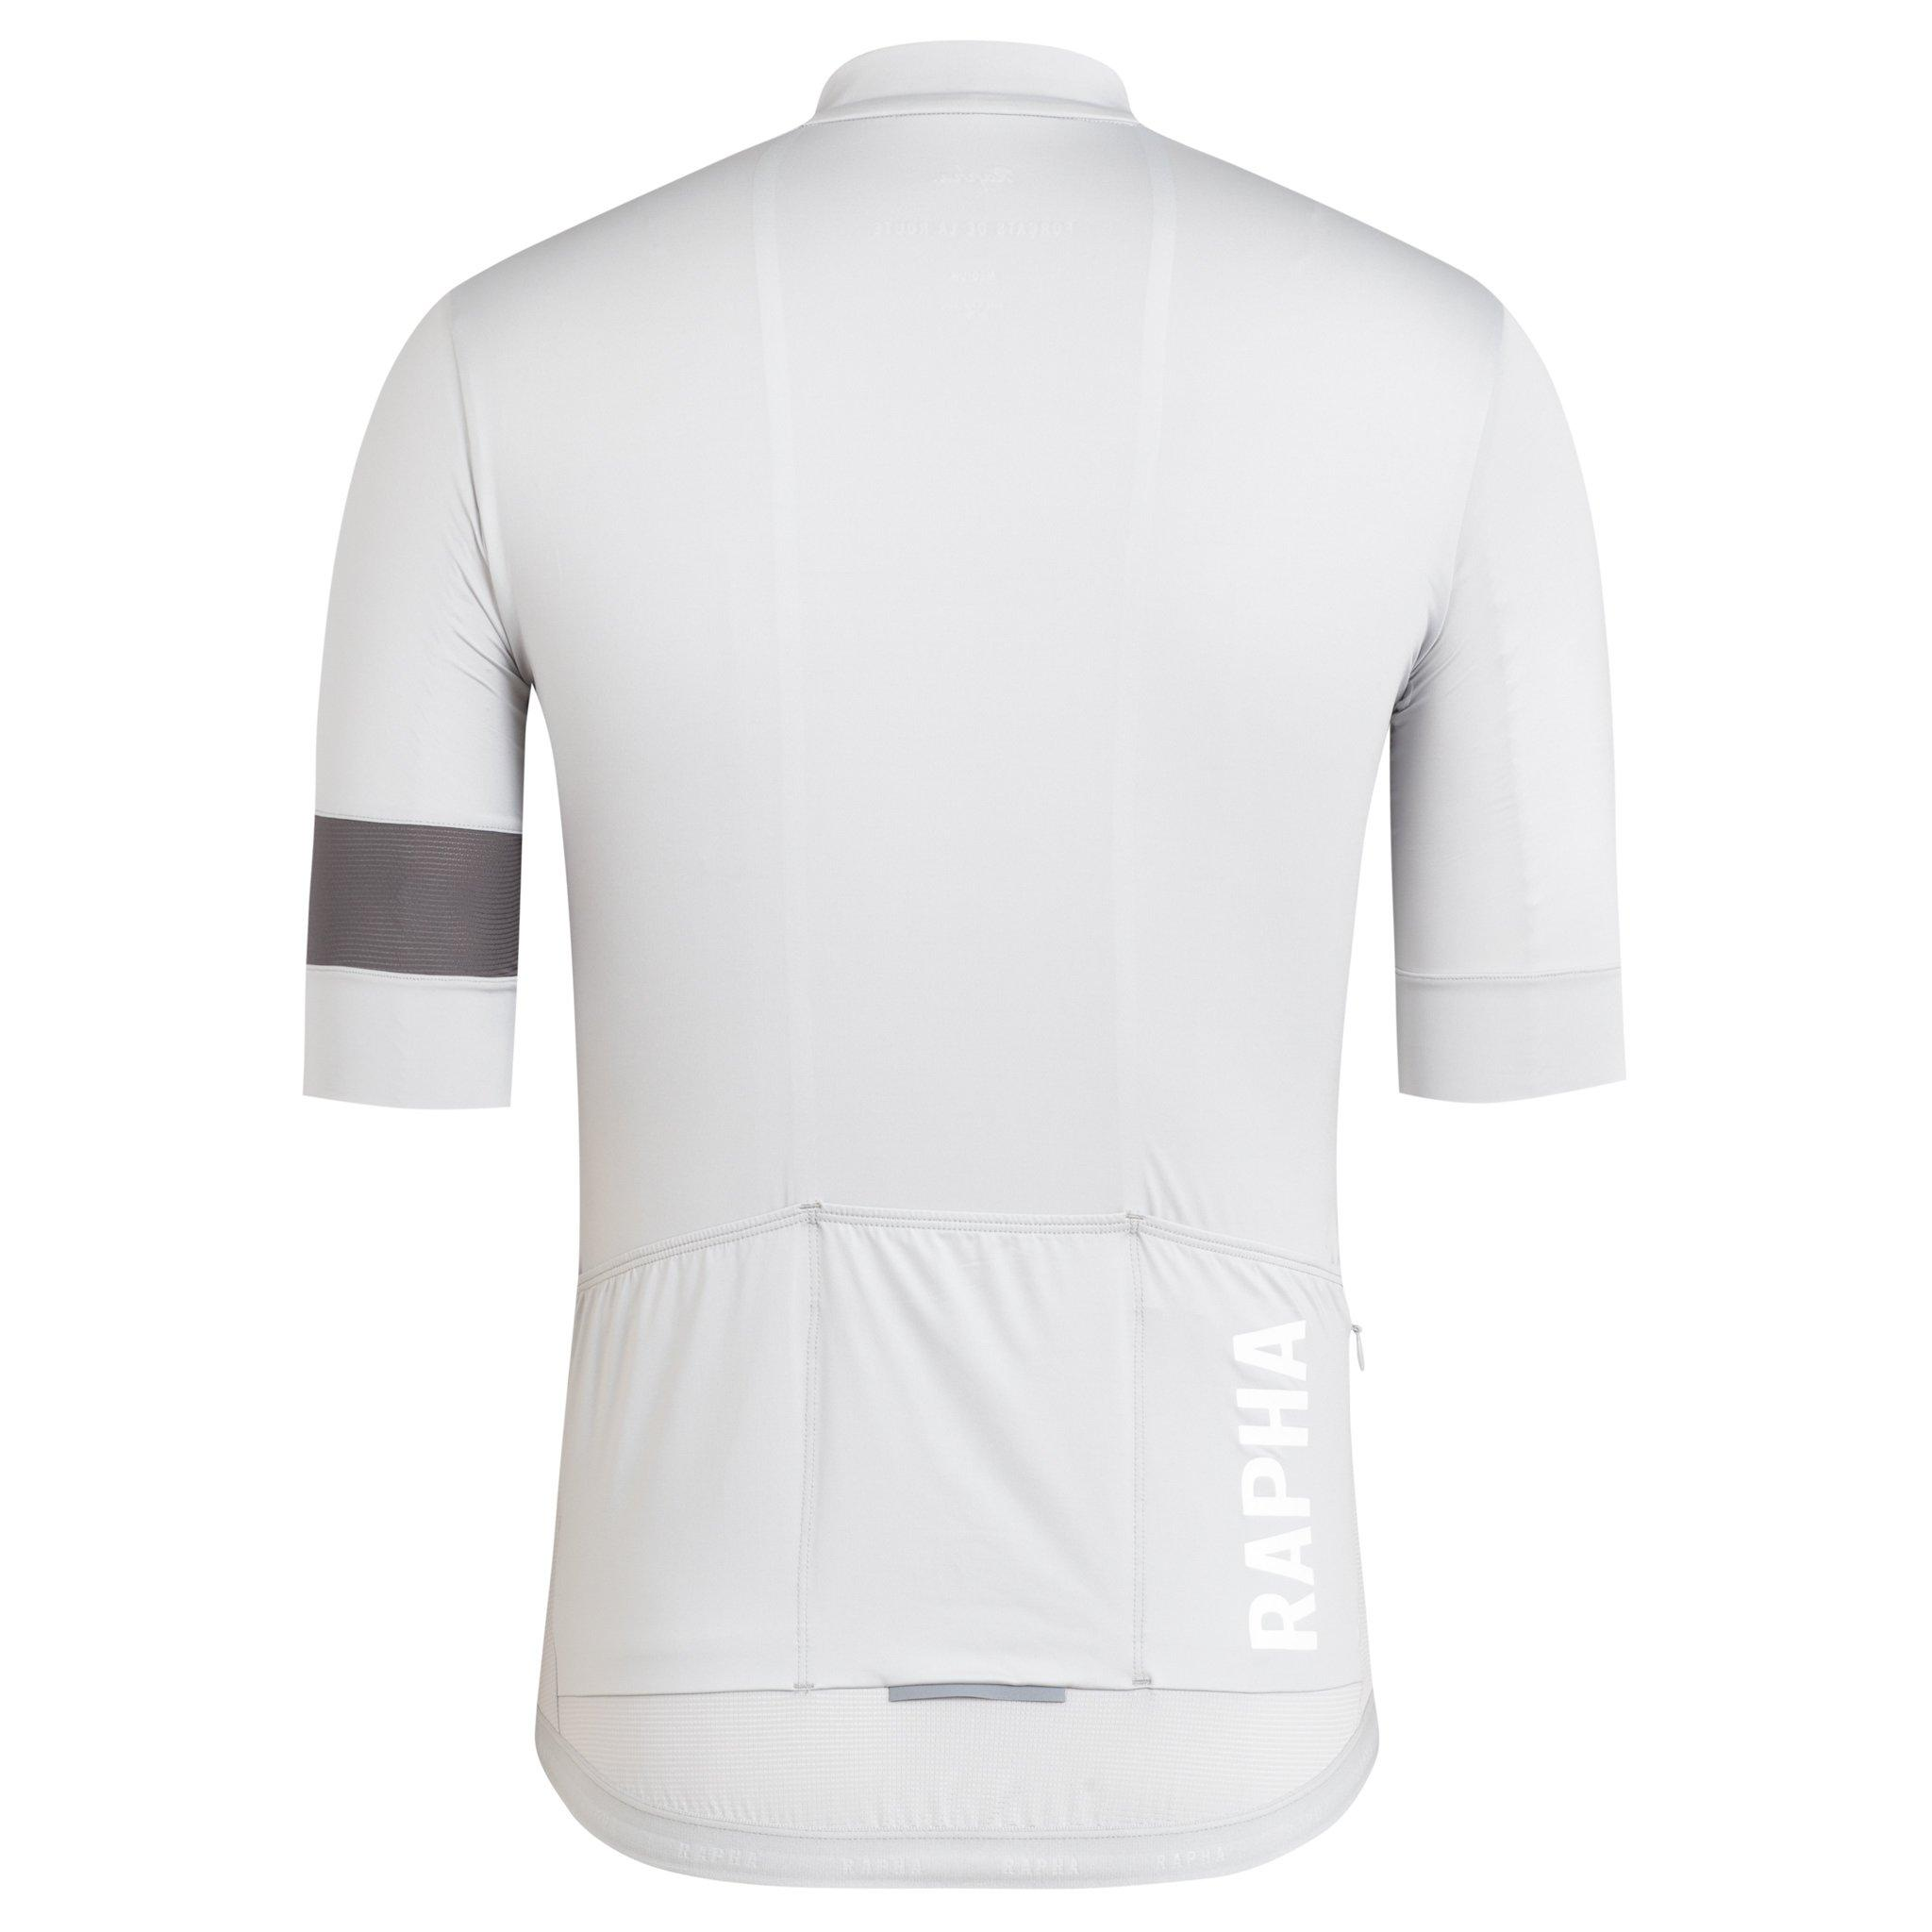 dc7400300d5 Pro Team Training Jersey   Rapha Fast Cycling Jersey   Rapha